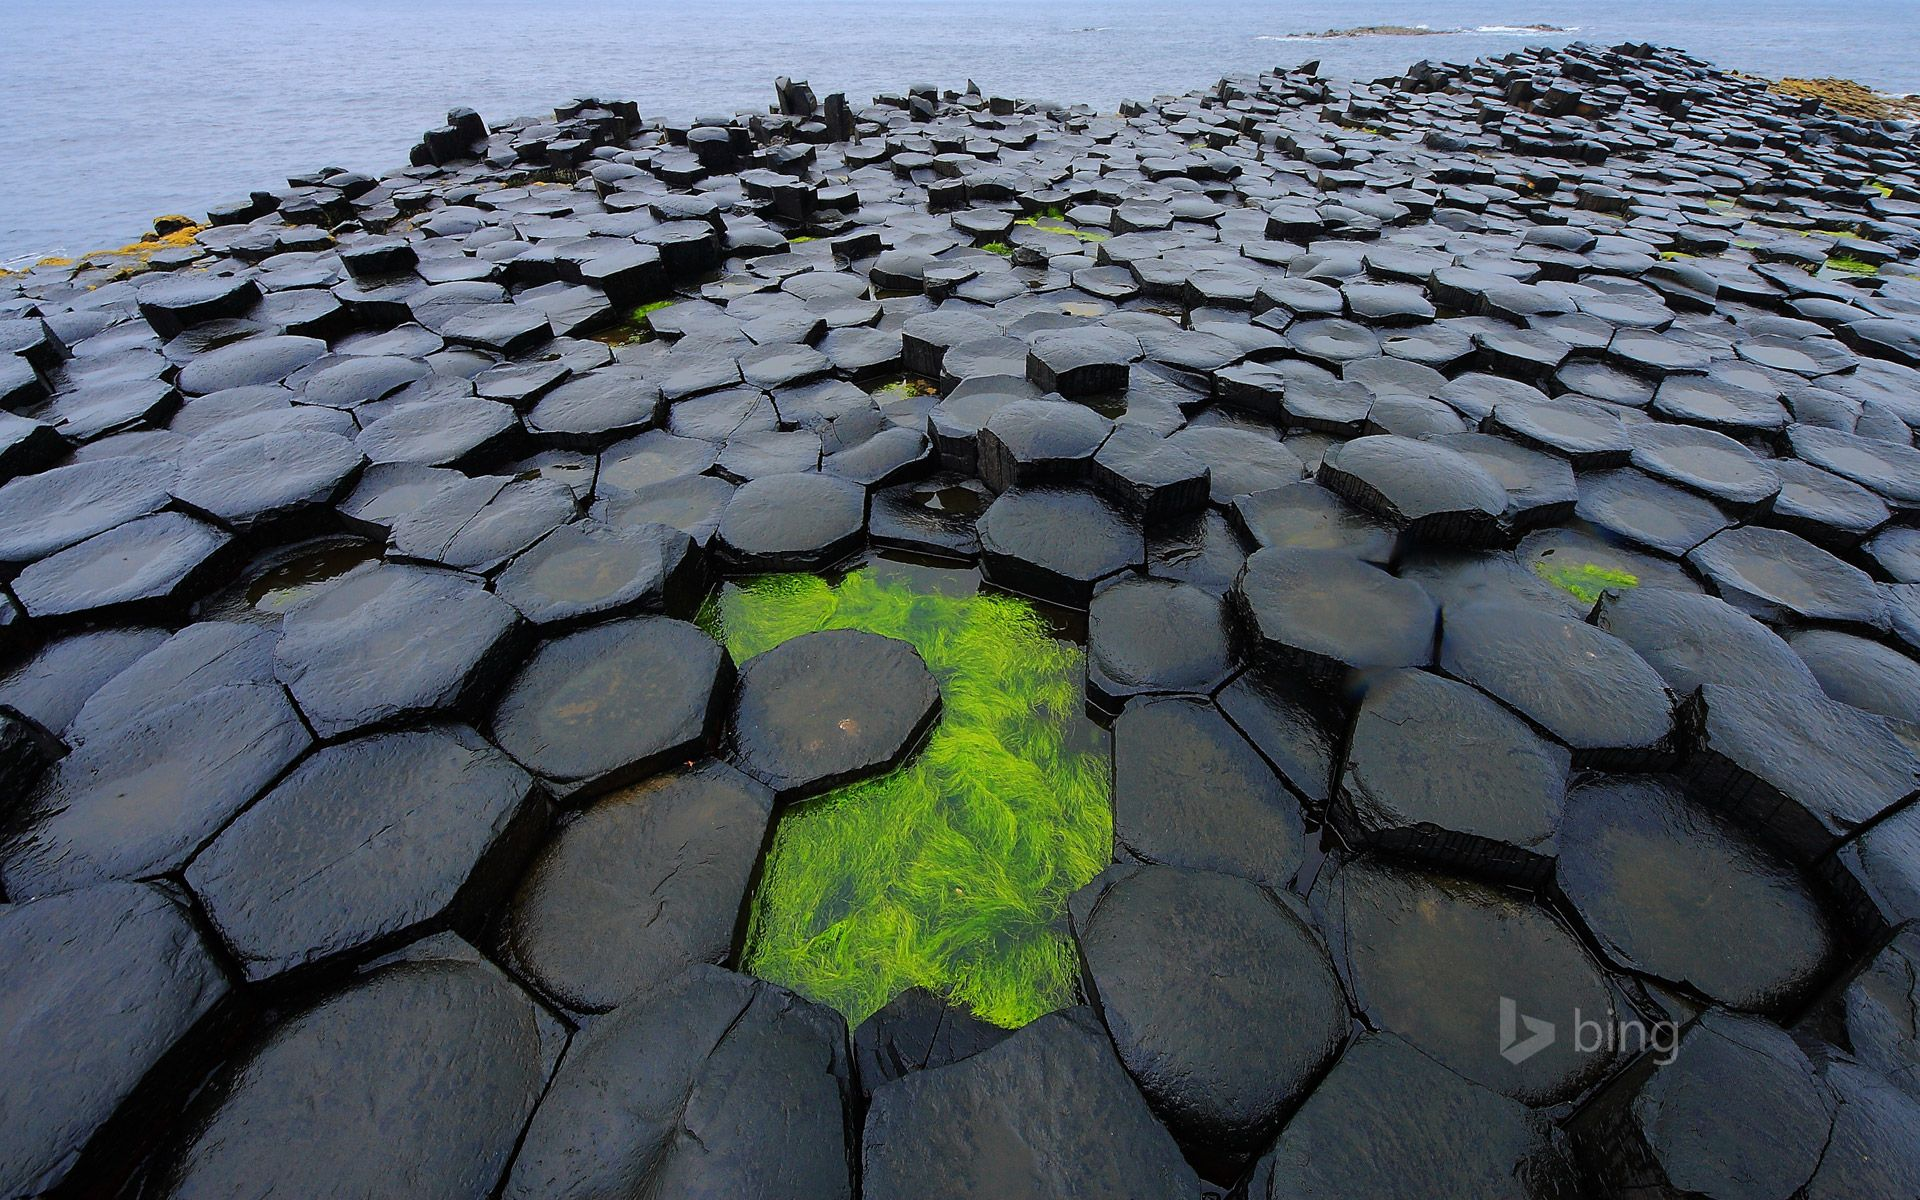 """One of my FAVOURITE Bing Homepage Images!  (© Nando Pizzini Photography/Getty Images)  """"Violent volcanic activity rocked the northeastern region of Ireland 50 to 60 million years ago, resulting in the formation of what we now call the Giant's Causeway. The strange, mostly hexagonal, basalt columns interlock so tightly that it's no wonder the ancient Celts believed the stones were part of a bridge to Scotland built by a giant."""""""